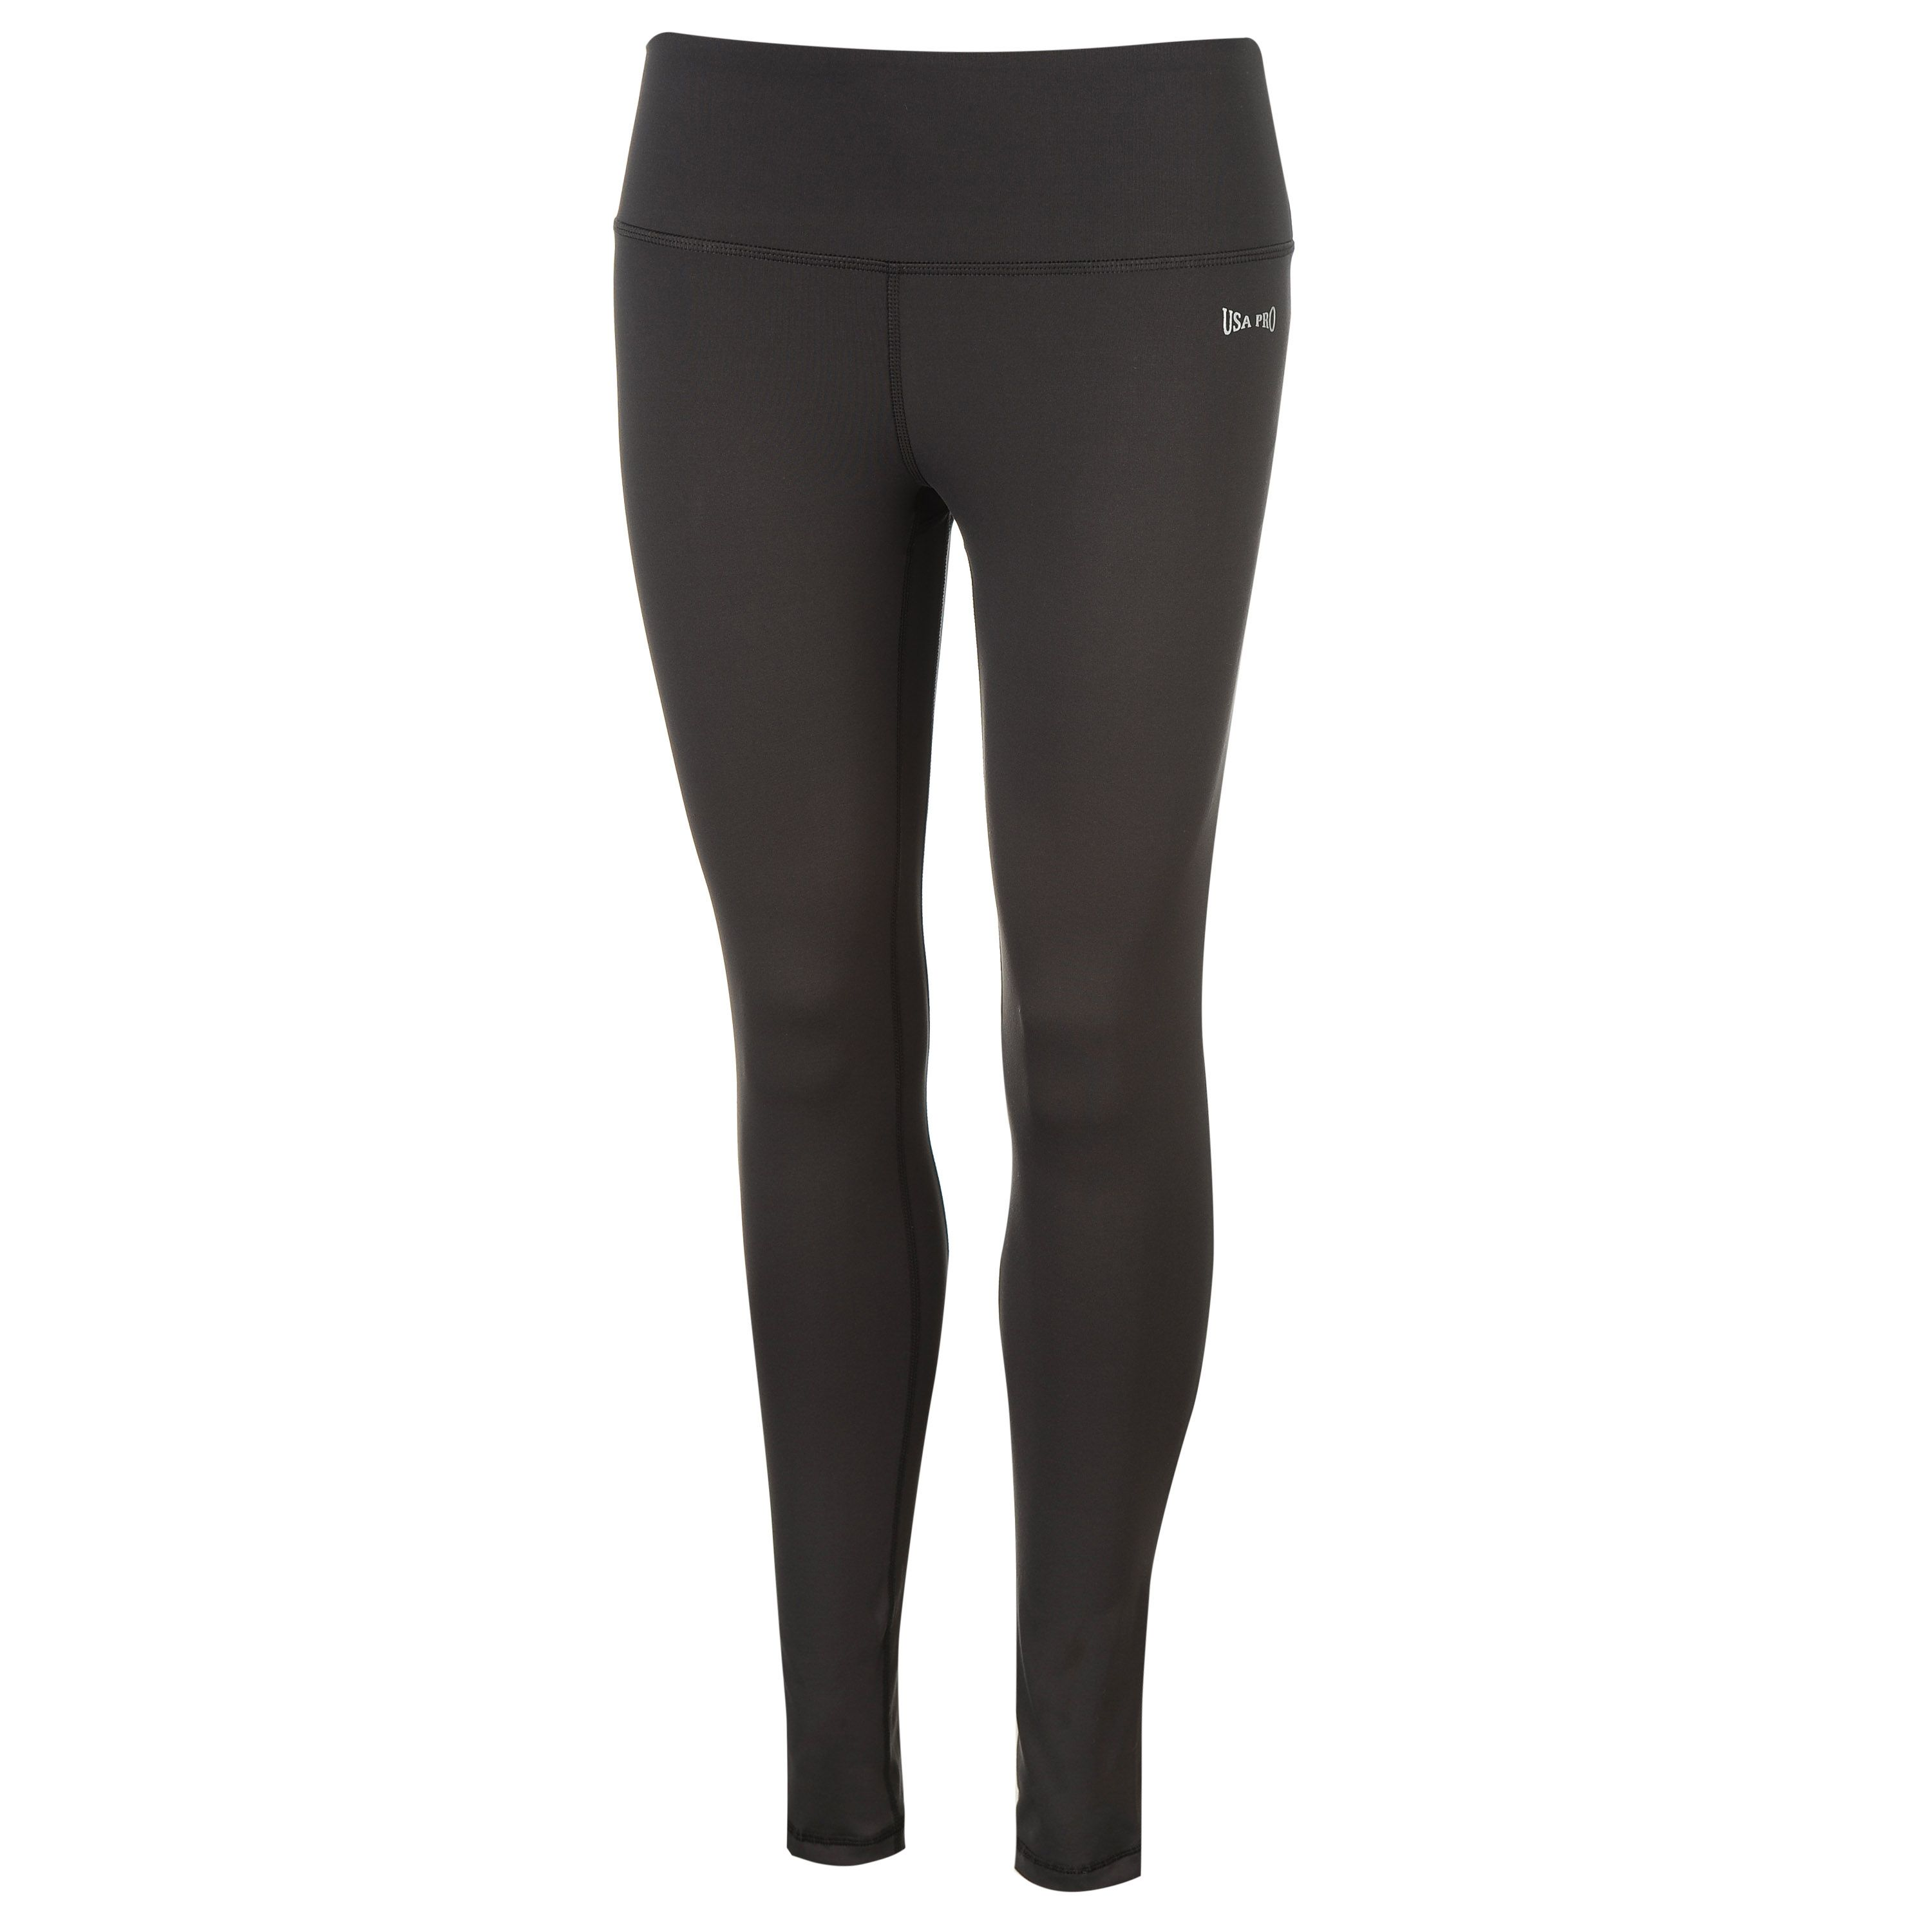 b6ecf3faf25f7 Best womens' sportswear - We test out fitness tops and leggings